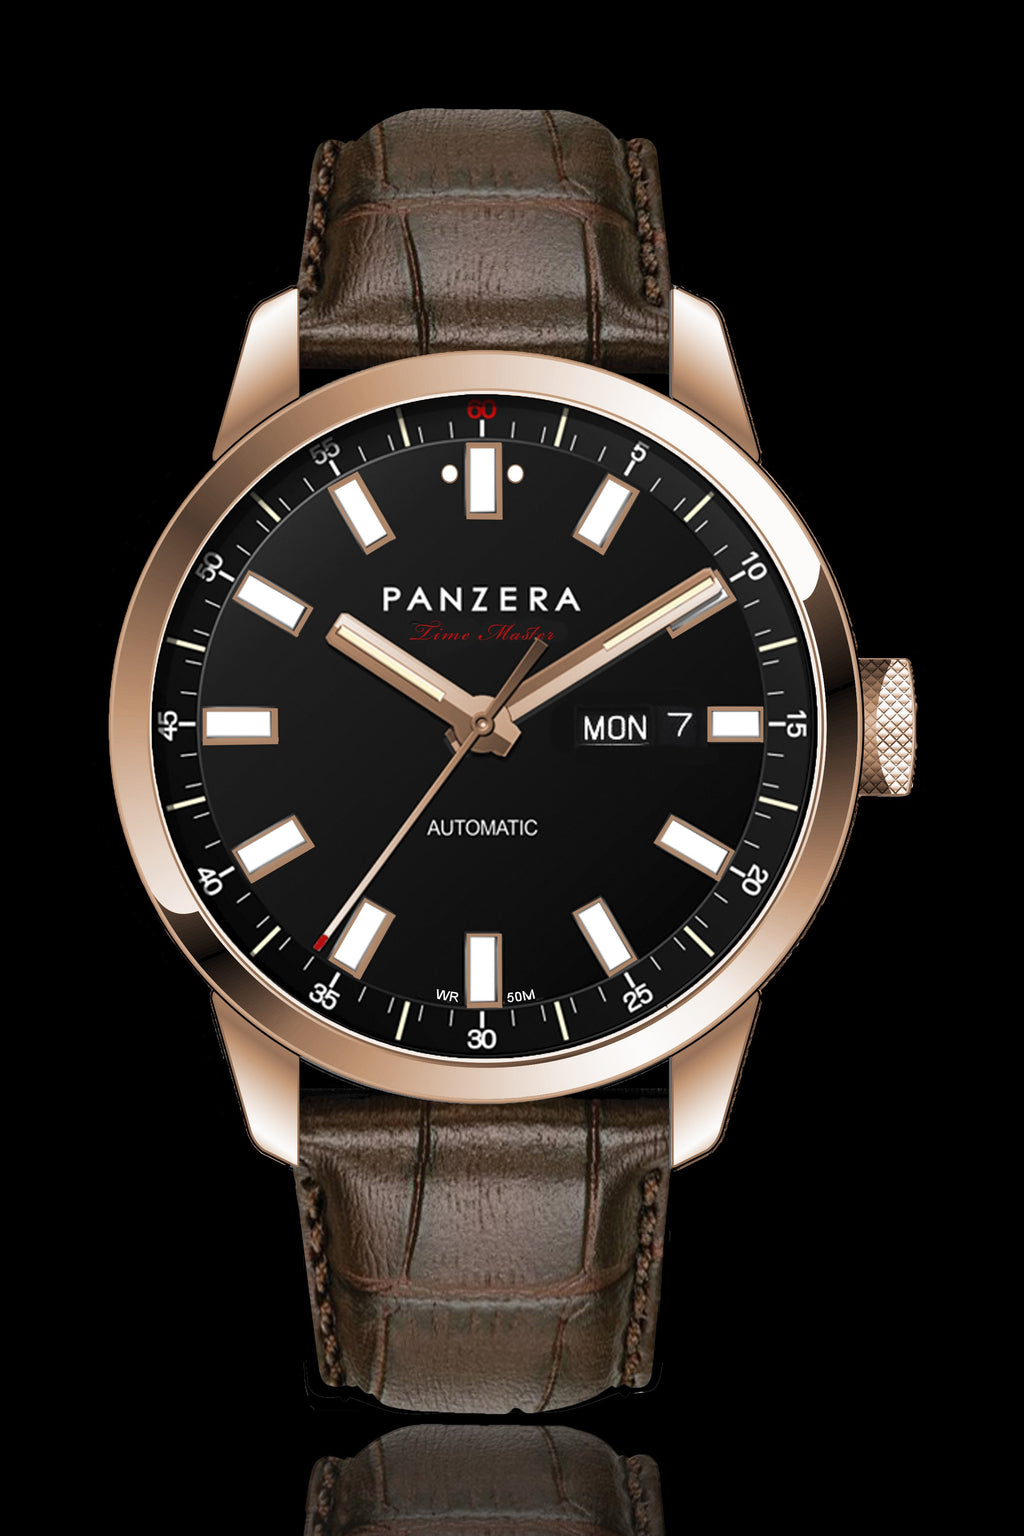 PANZERA TIME MASTER GRAND TOURING MK2